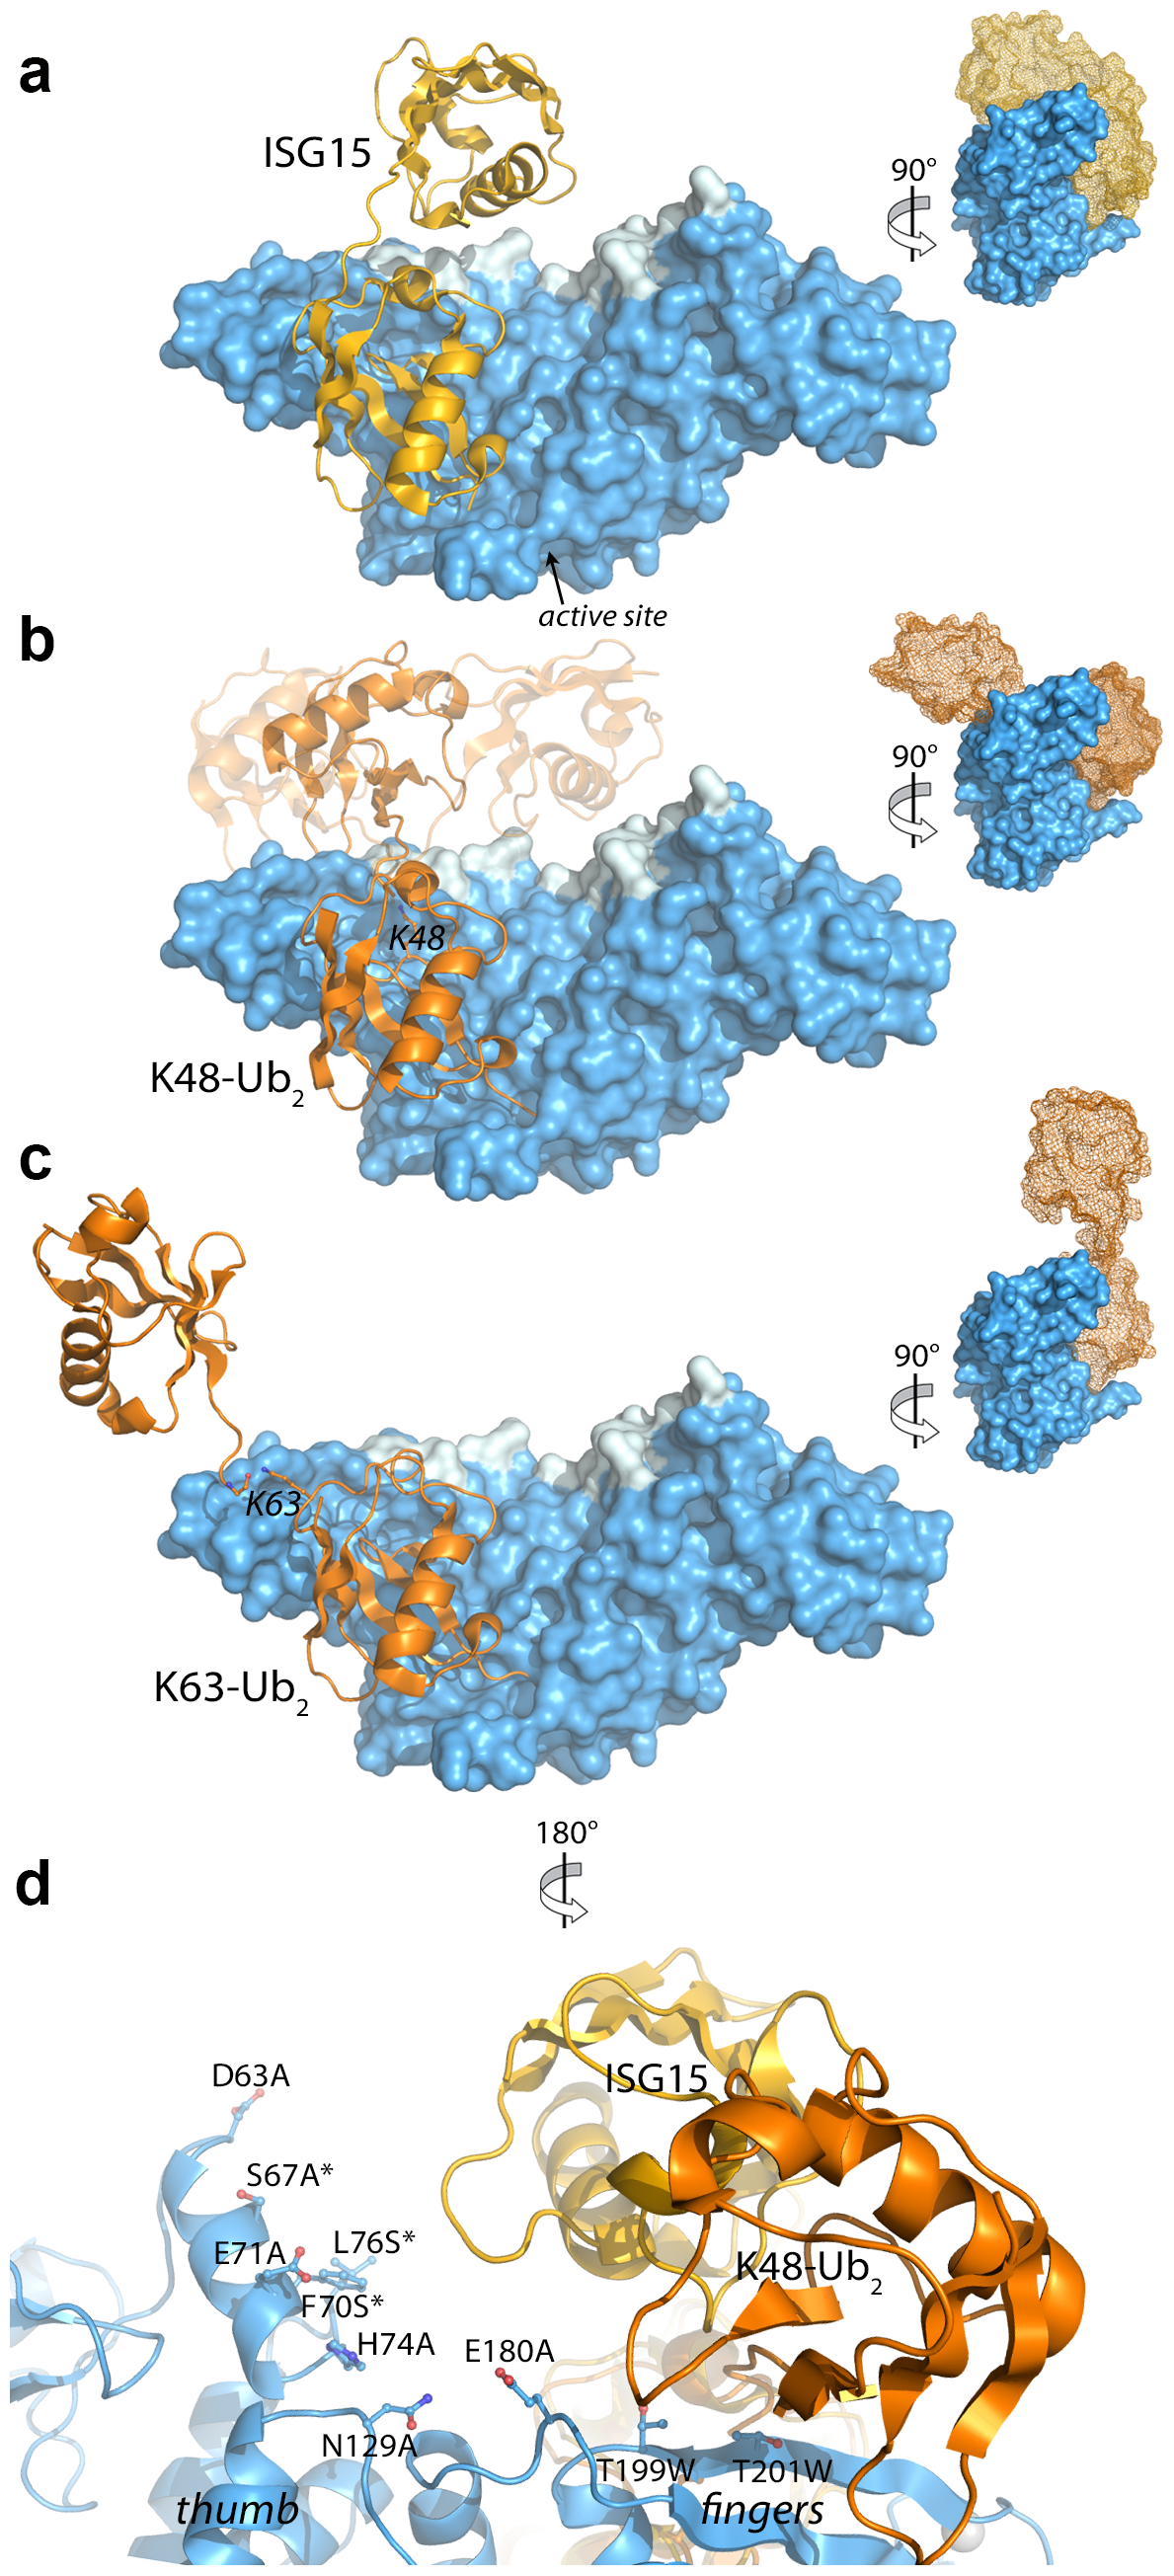 Modeling and mutational analysis suggest that PLpro binds to ISG15 and K48-Ub<sub>2</sub>, but not K63-Ub<sub>2</sub>, in a bidentate manner.